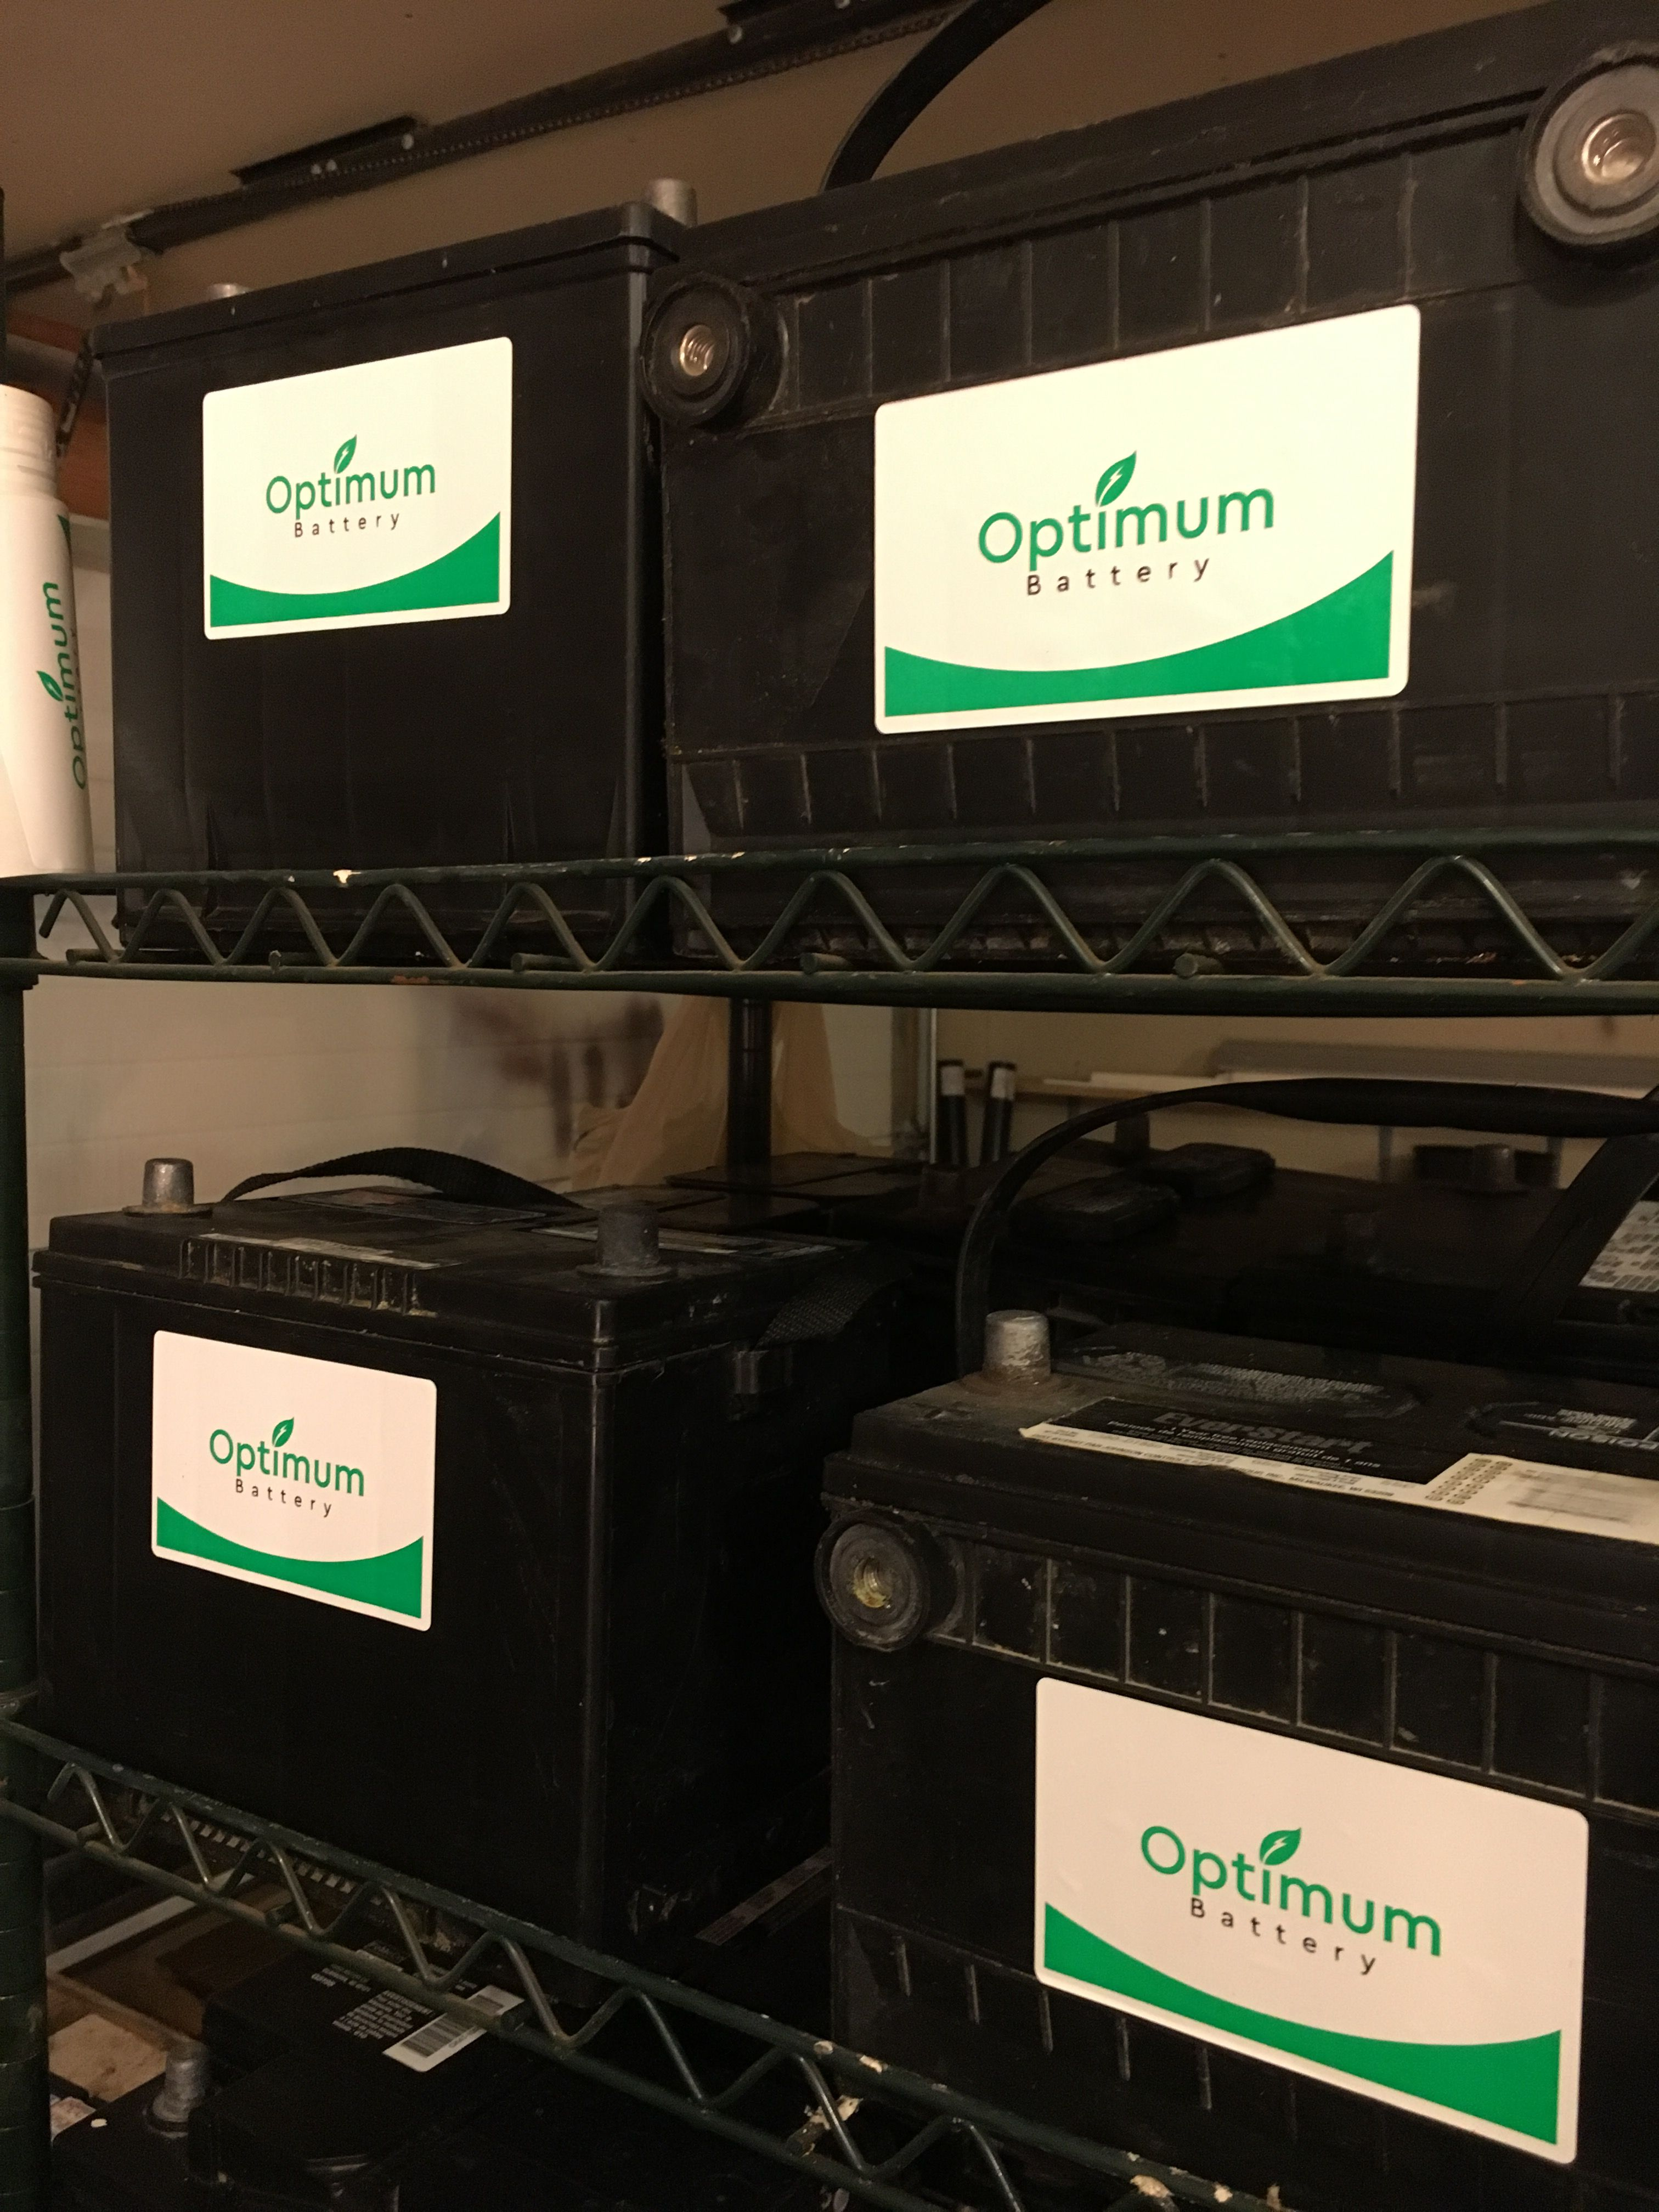 Check Out Our Used And Refurbished Automotive Batteries For Only 45 Take An Additional 10 Off For Each Bat Optima Battery Car Battery Jump A Car Battery